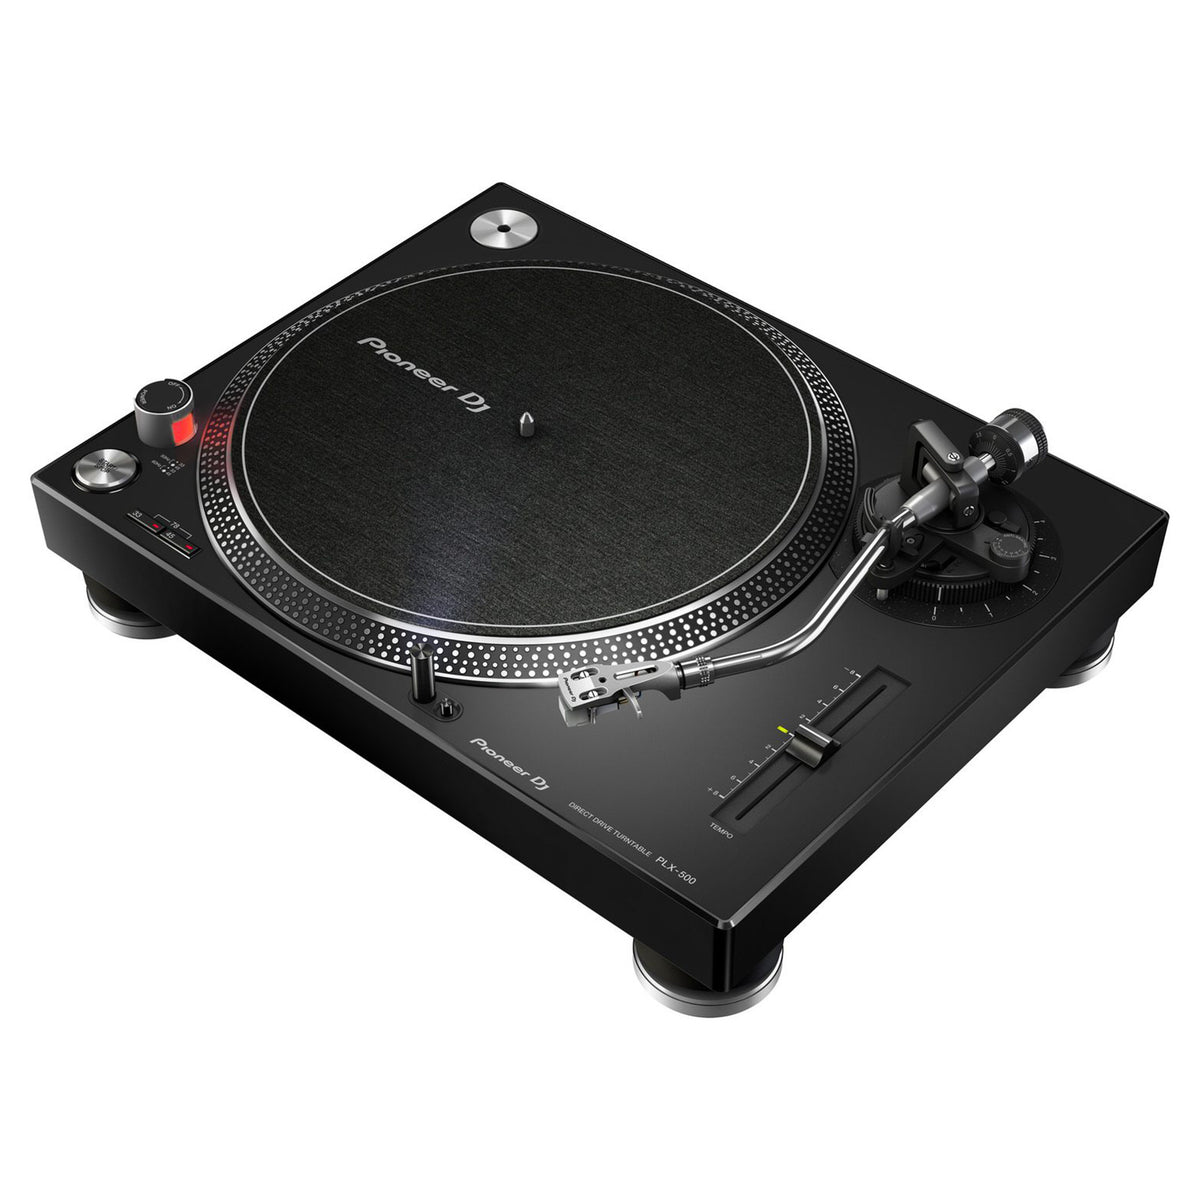 Pioneer plx 500 direct drive usb turntable black for Direct drive turntable motor